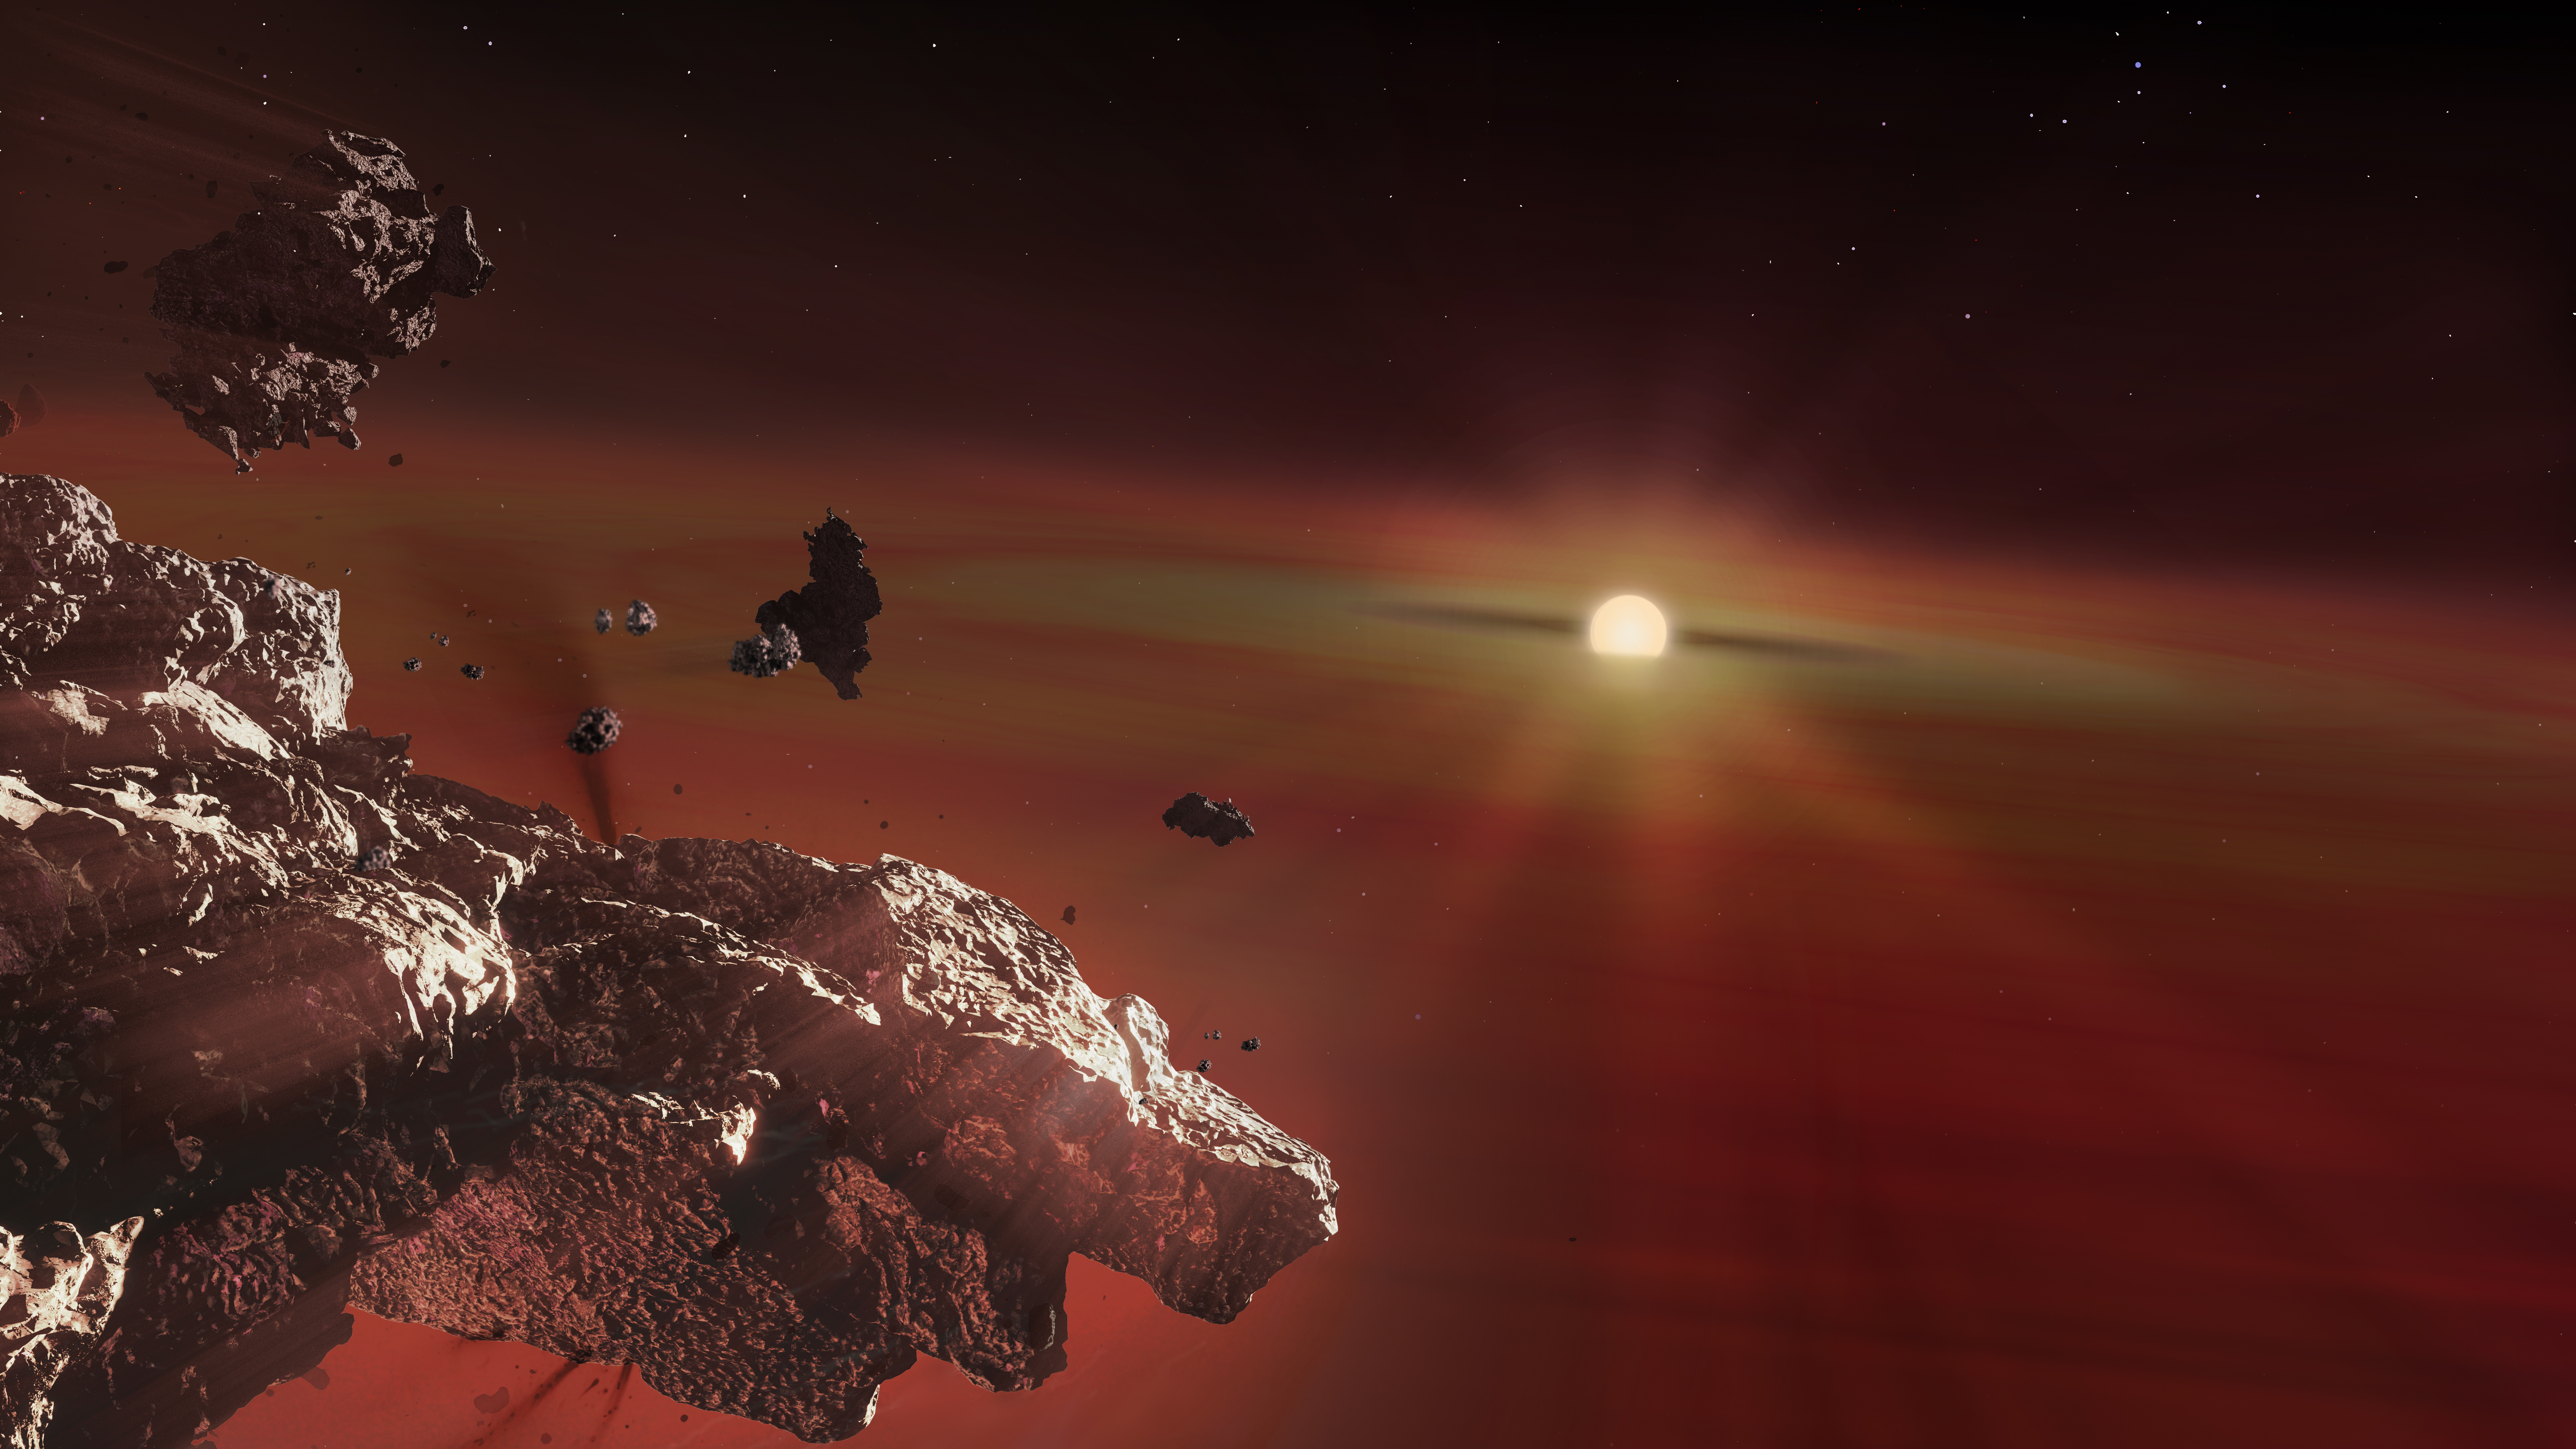 Remains of Rocky Planets Found In Dying Stars